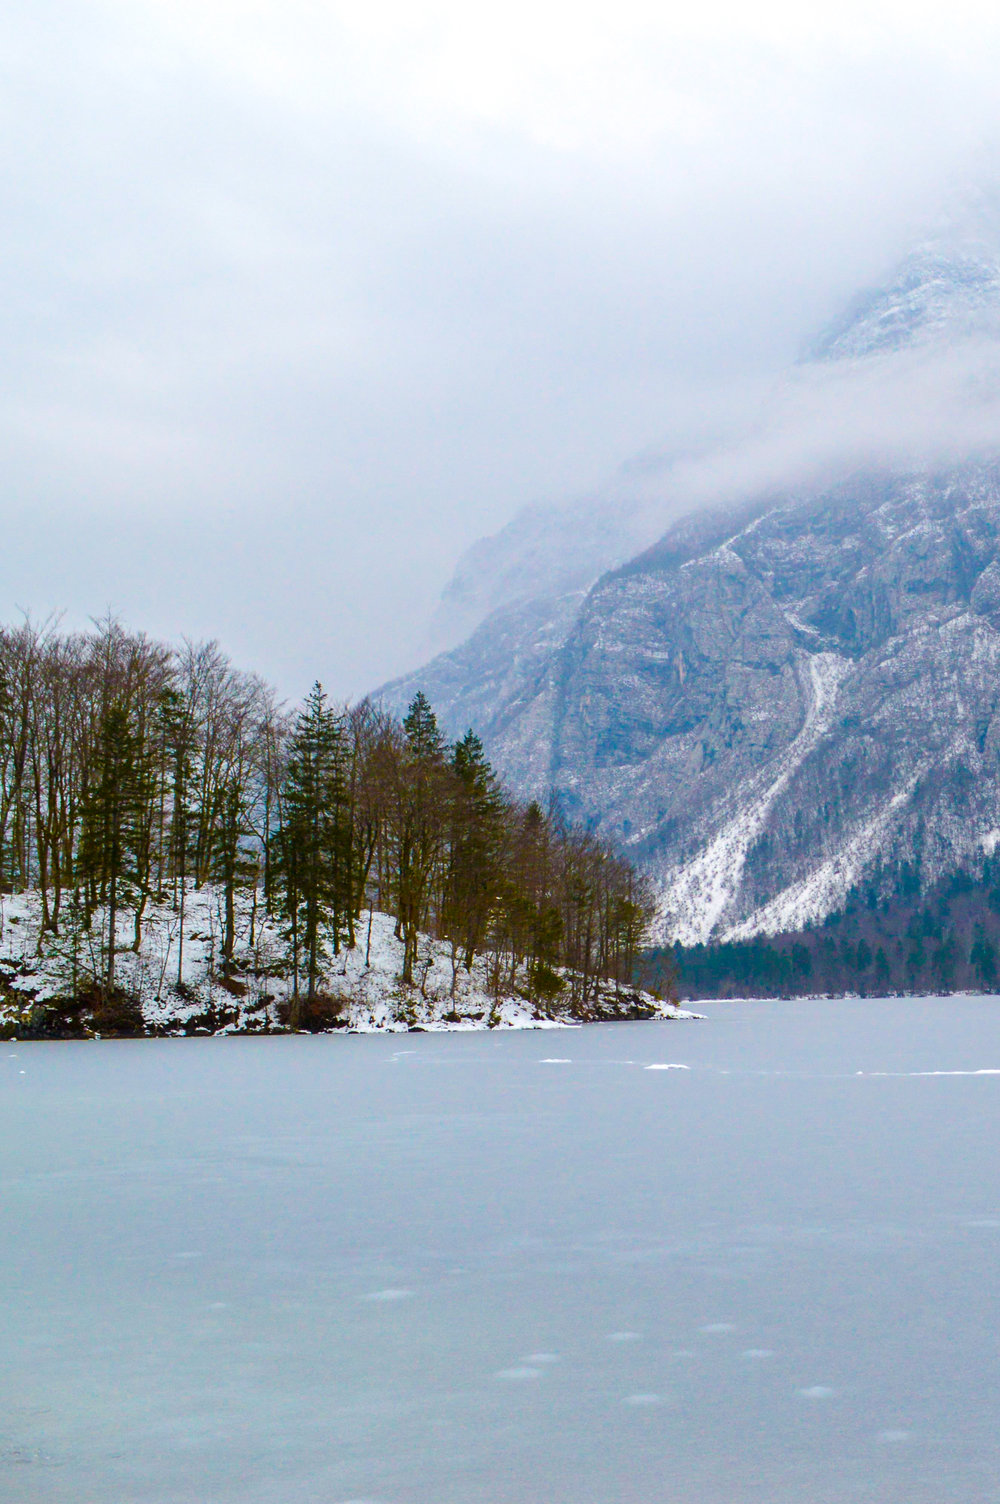 Completely frozen Lake Bohinj with a more dramatic mountainous backdrop